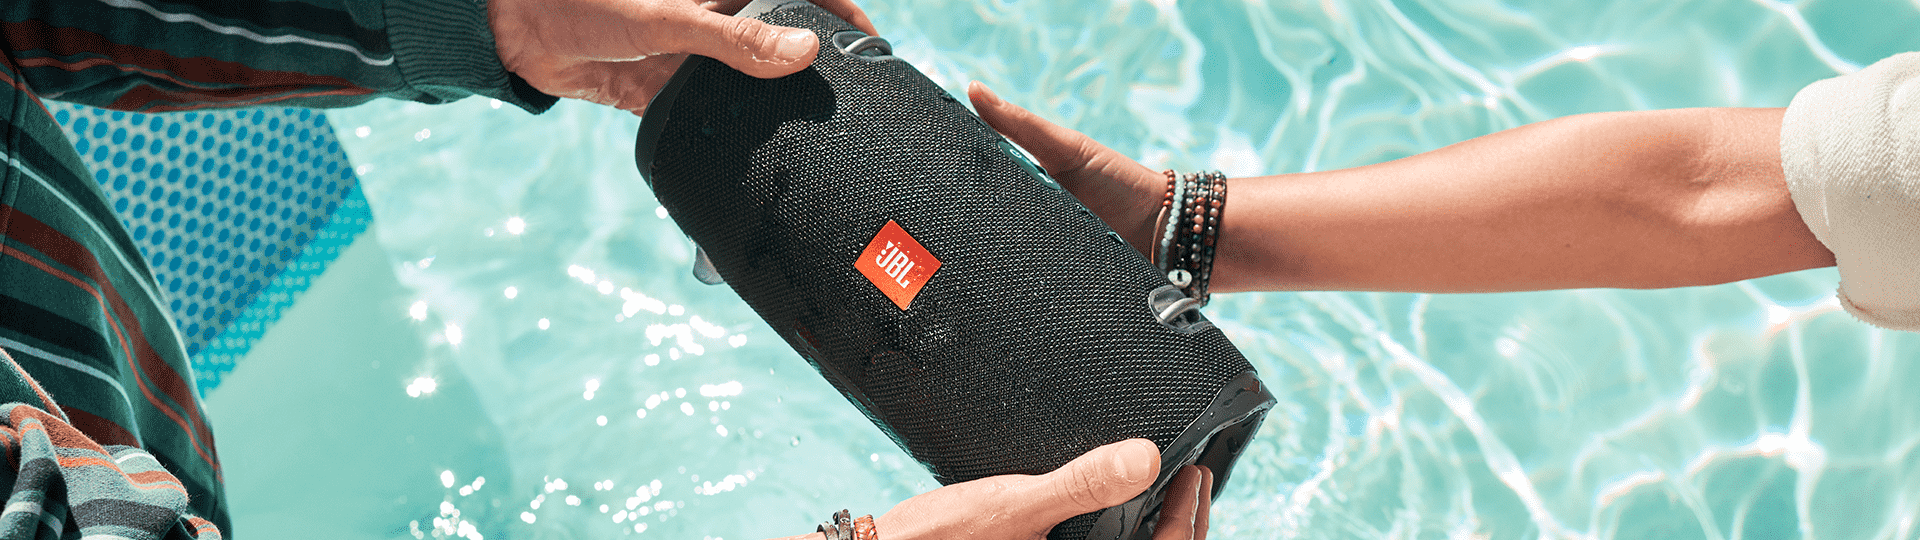 JBL Bluetooth-speakers